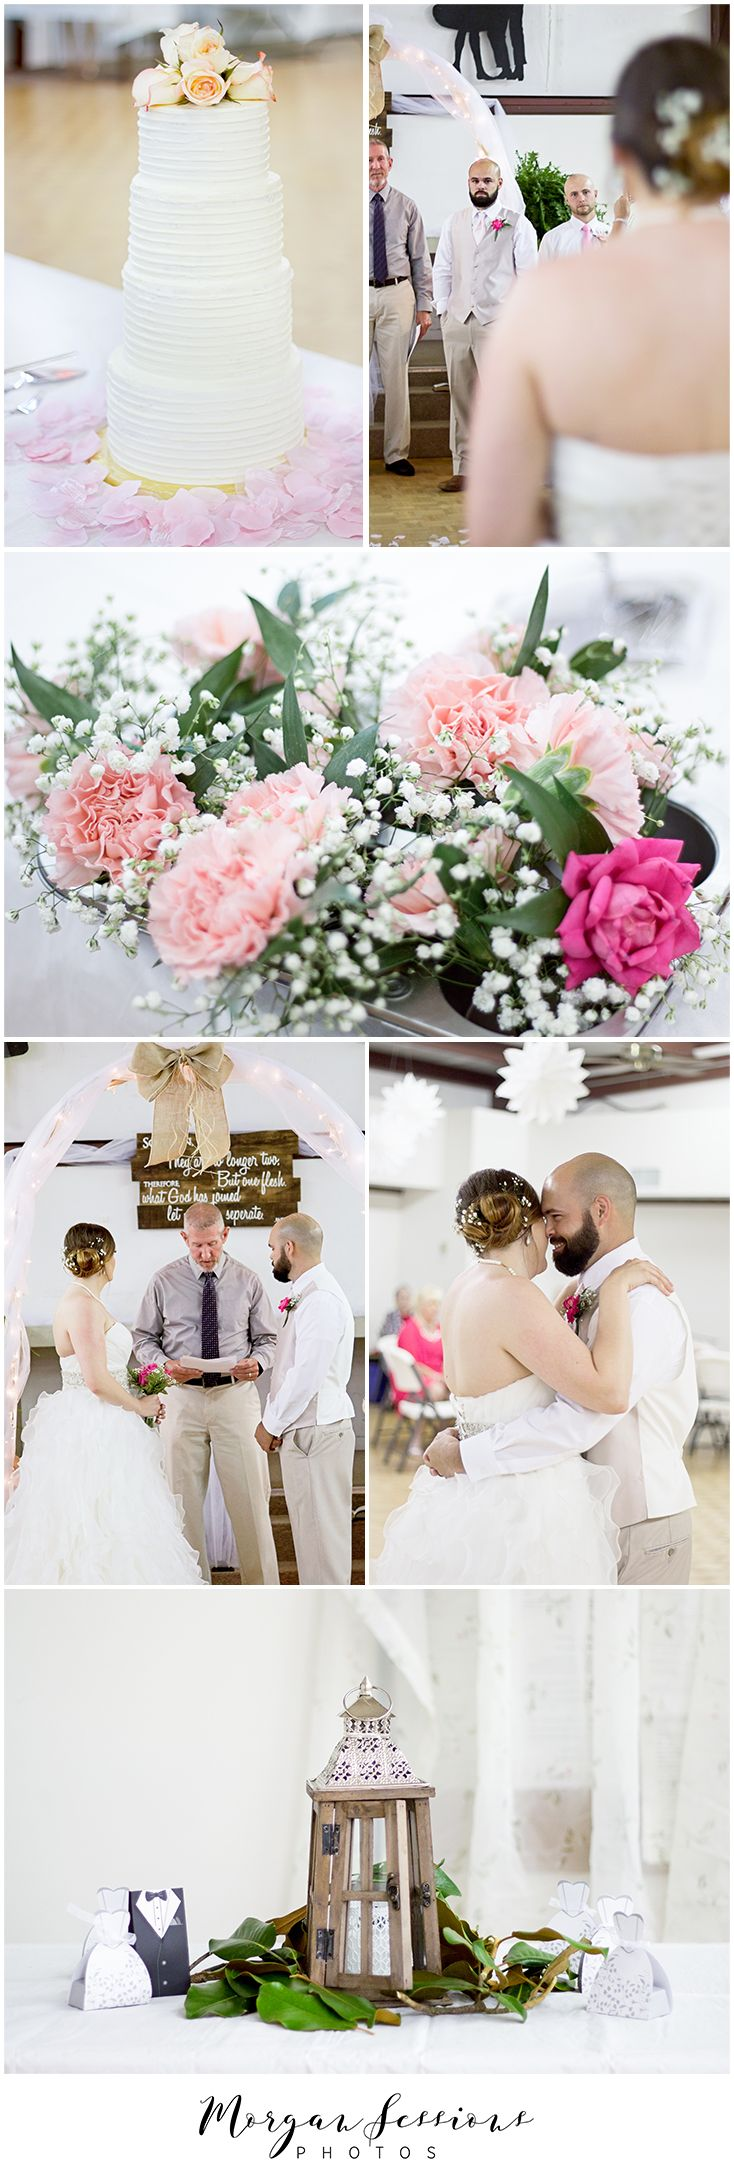 Wedding. First Dance. Bride and Groom. Wedding Details. Wedding Cake. Wedding Flowers. Bridals. Walking down the isle. Groom's reaction. Morgan Sessions Photos.